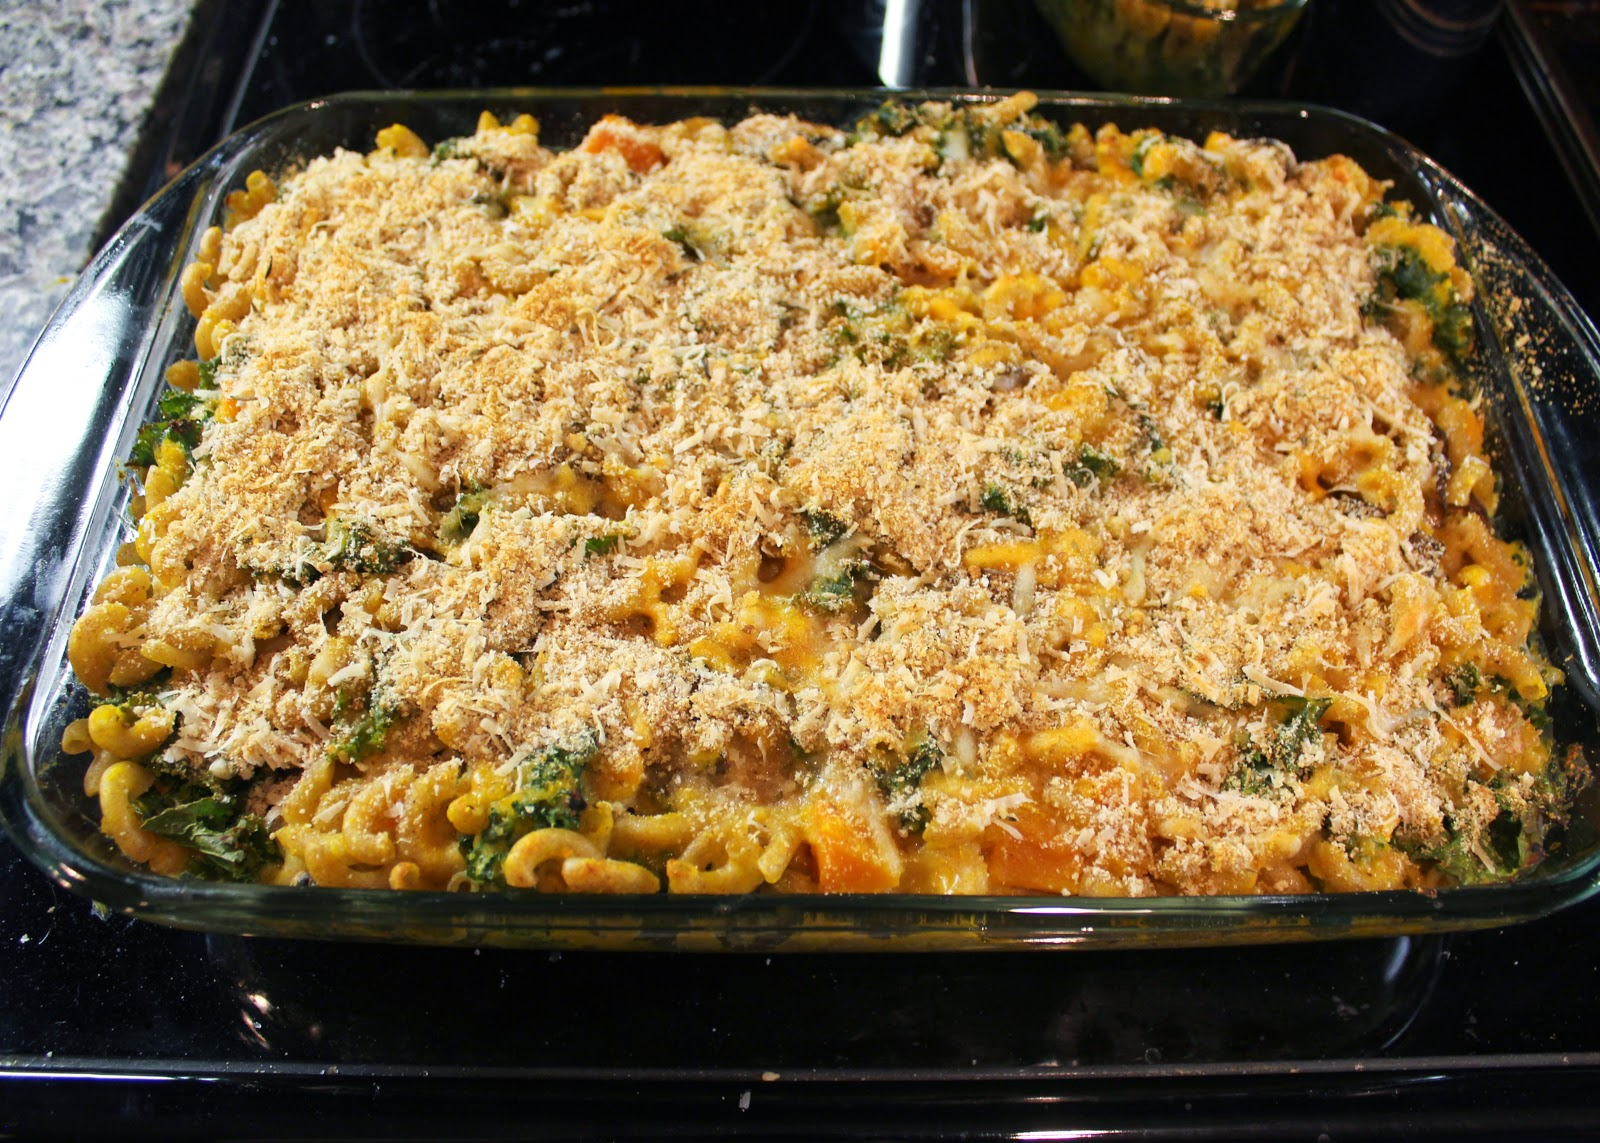 Baked squash mac and cheese